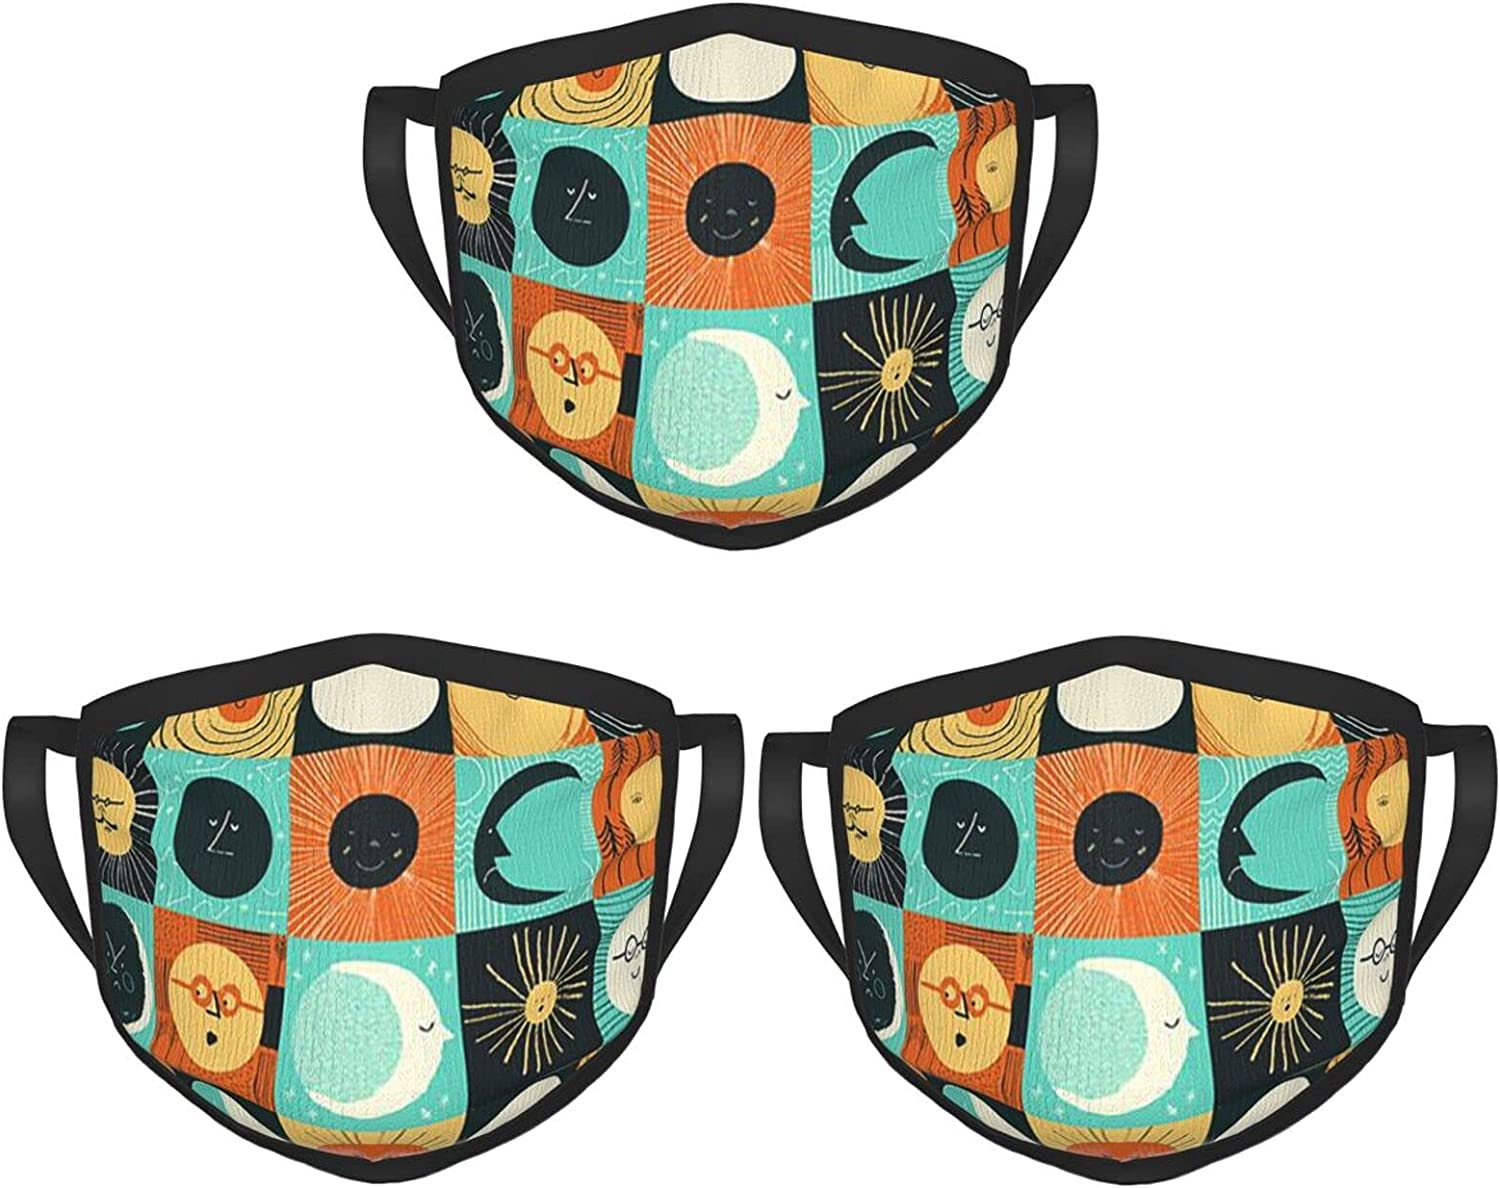 Balaclava Earmuffs Suns Retro Surf Moon Face Mouth Cover Mask Reusable Windproof Scarf Towel Cover Headwrap